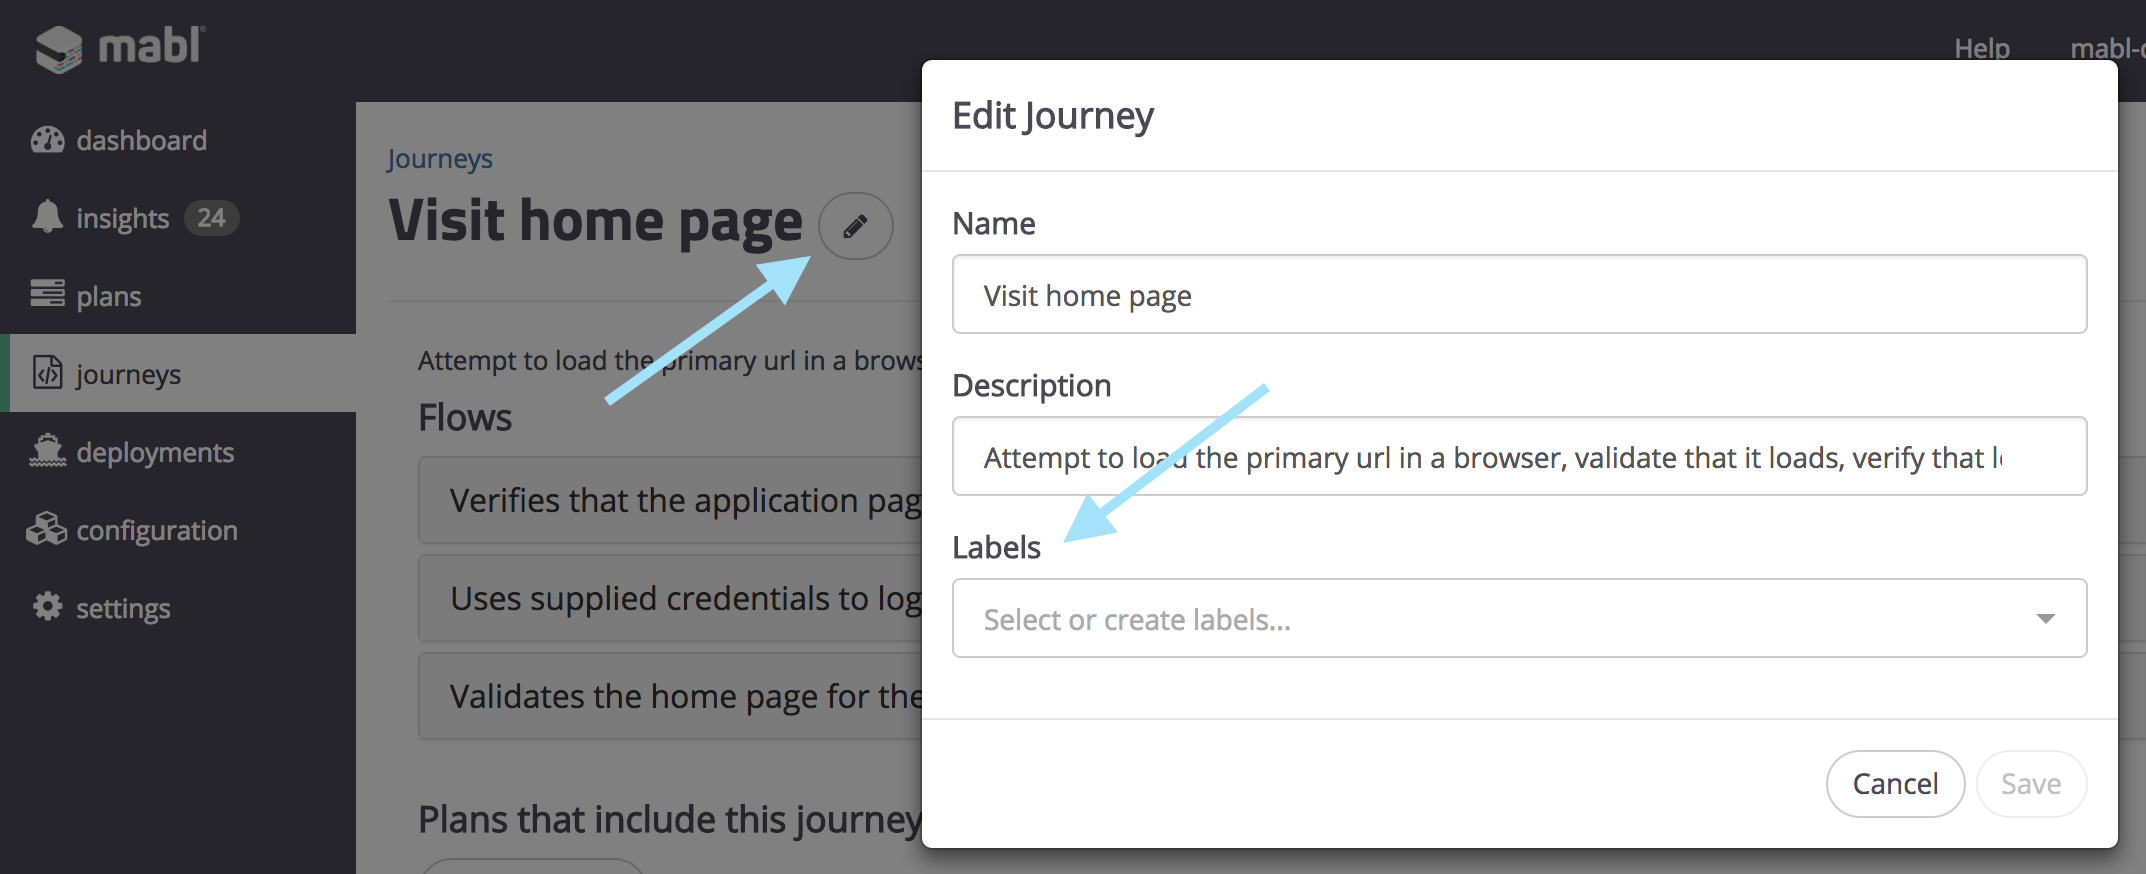 Add or update labels to existing journeys by opening the Edit Journey modal.